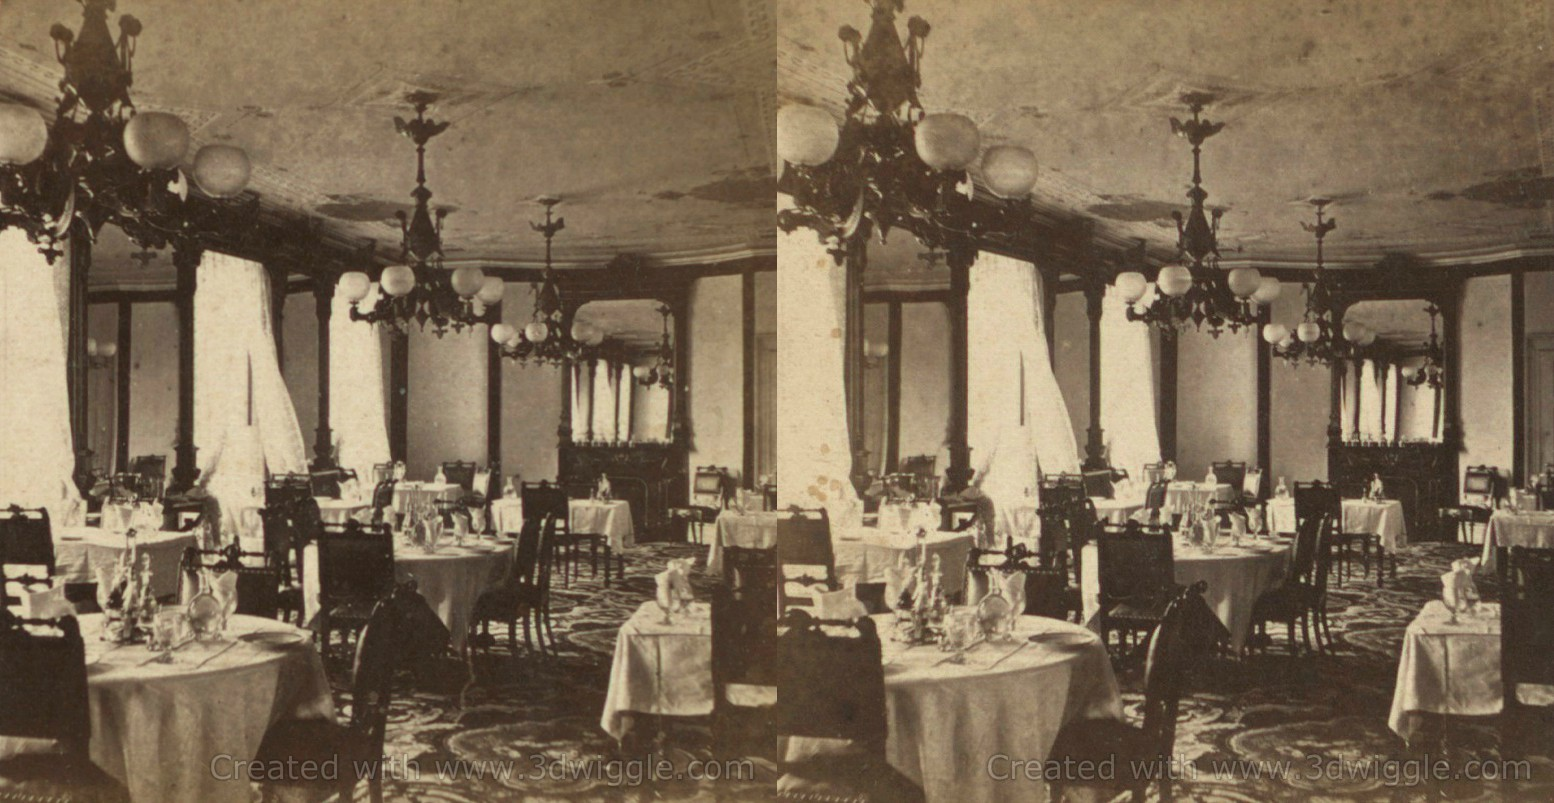 Dining Room, Maison Doree stereo card, New York Public Library